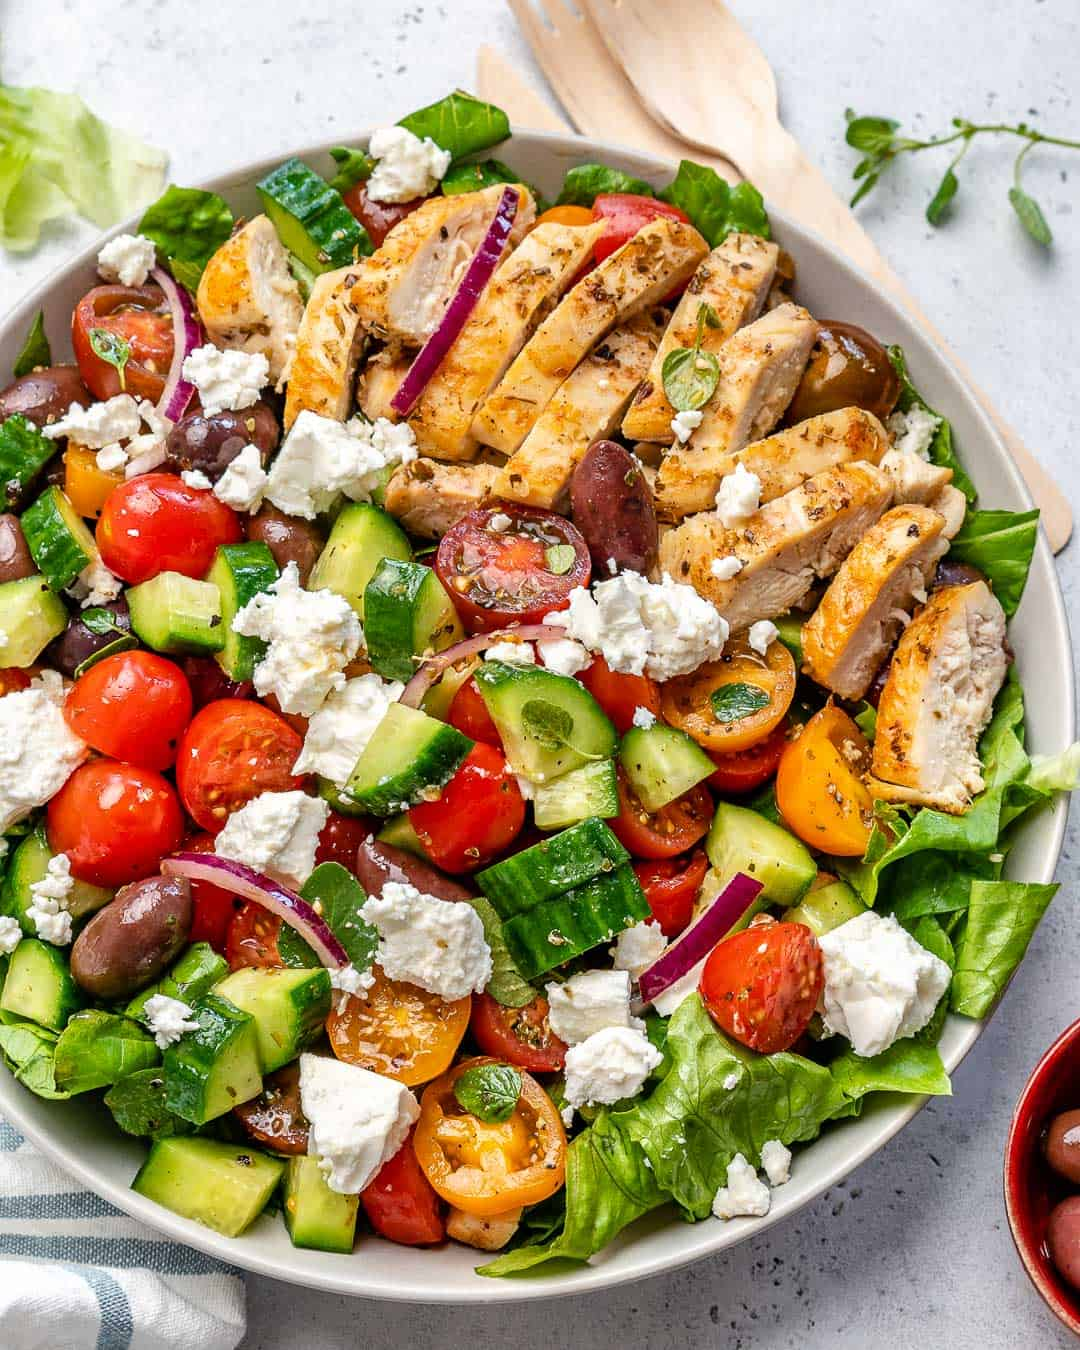 grilled chicken slices on salad in a white bowl